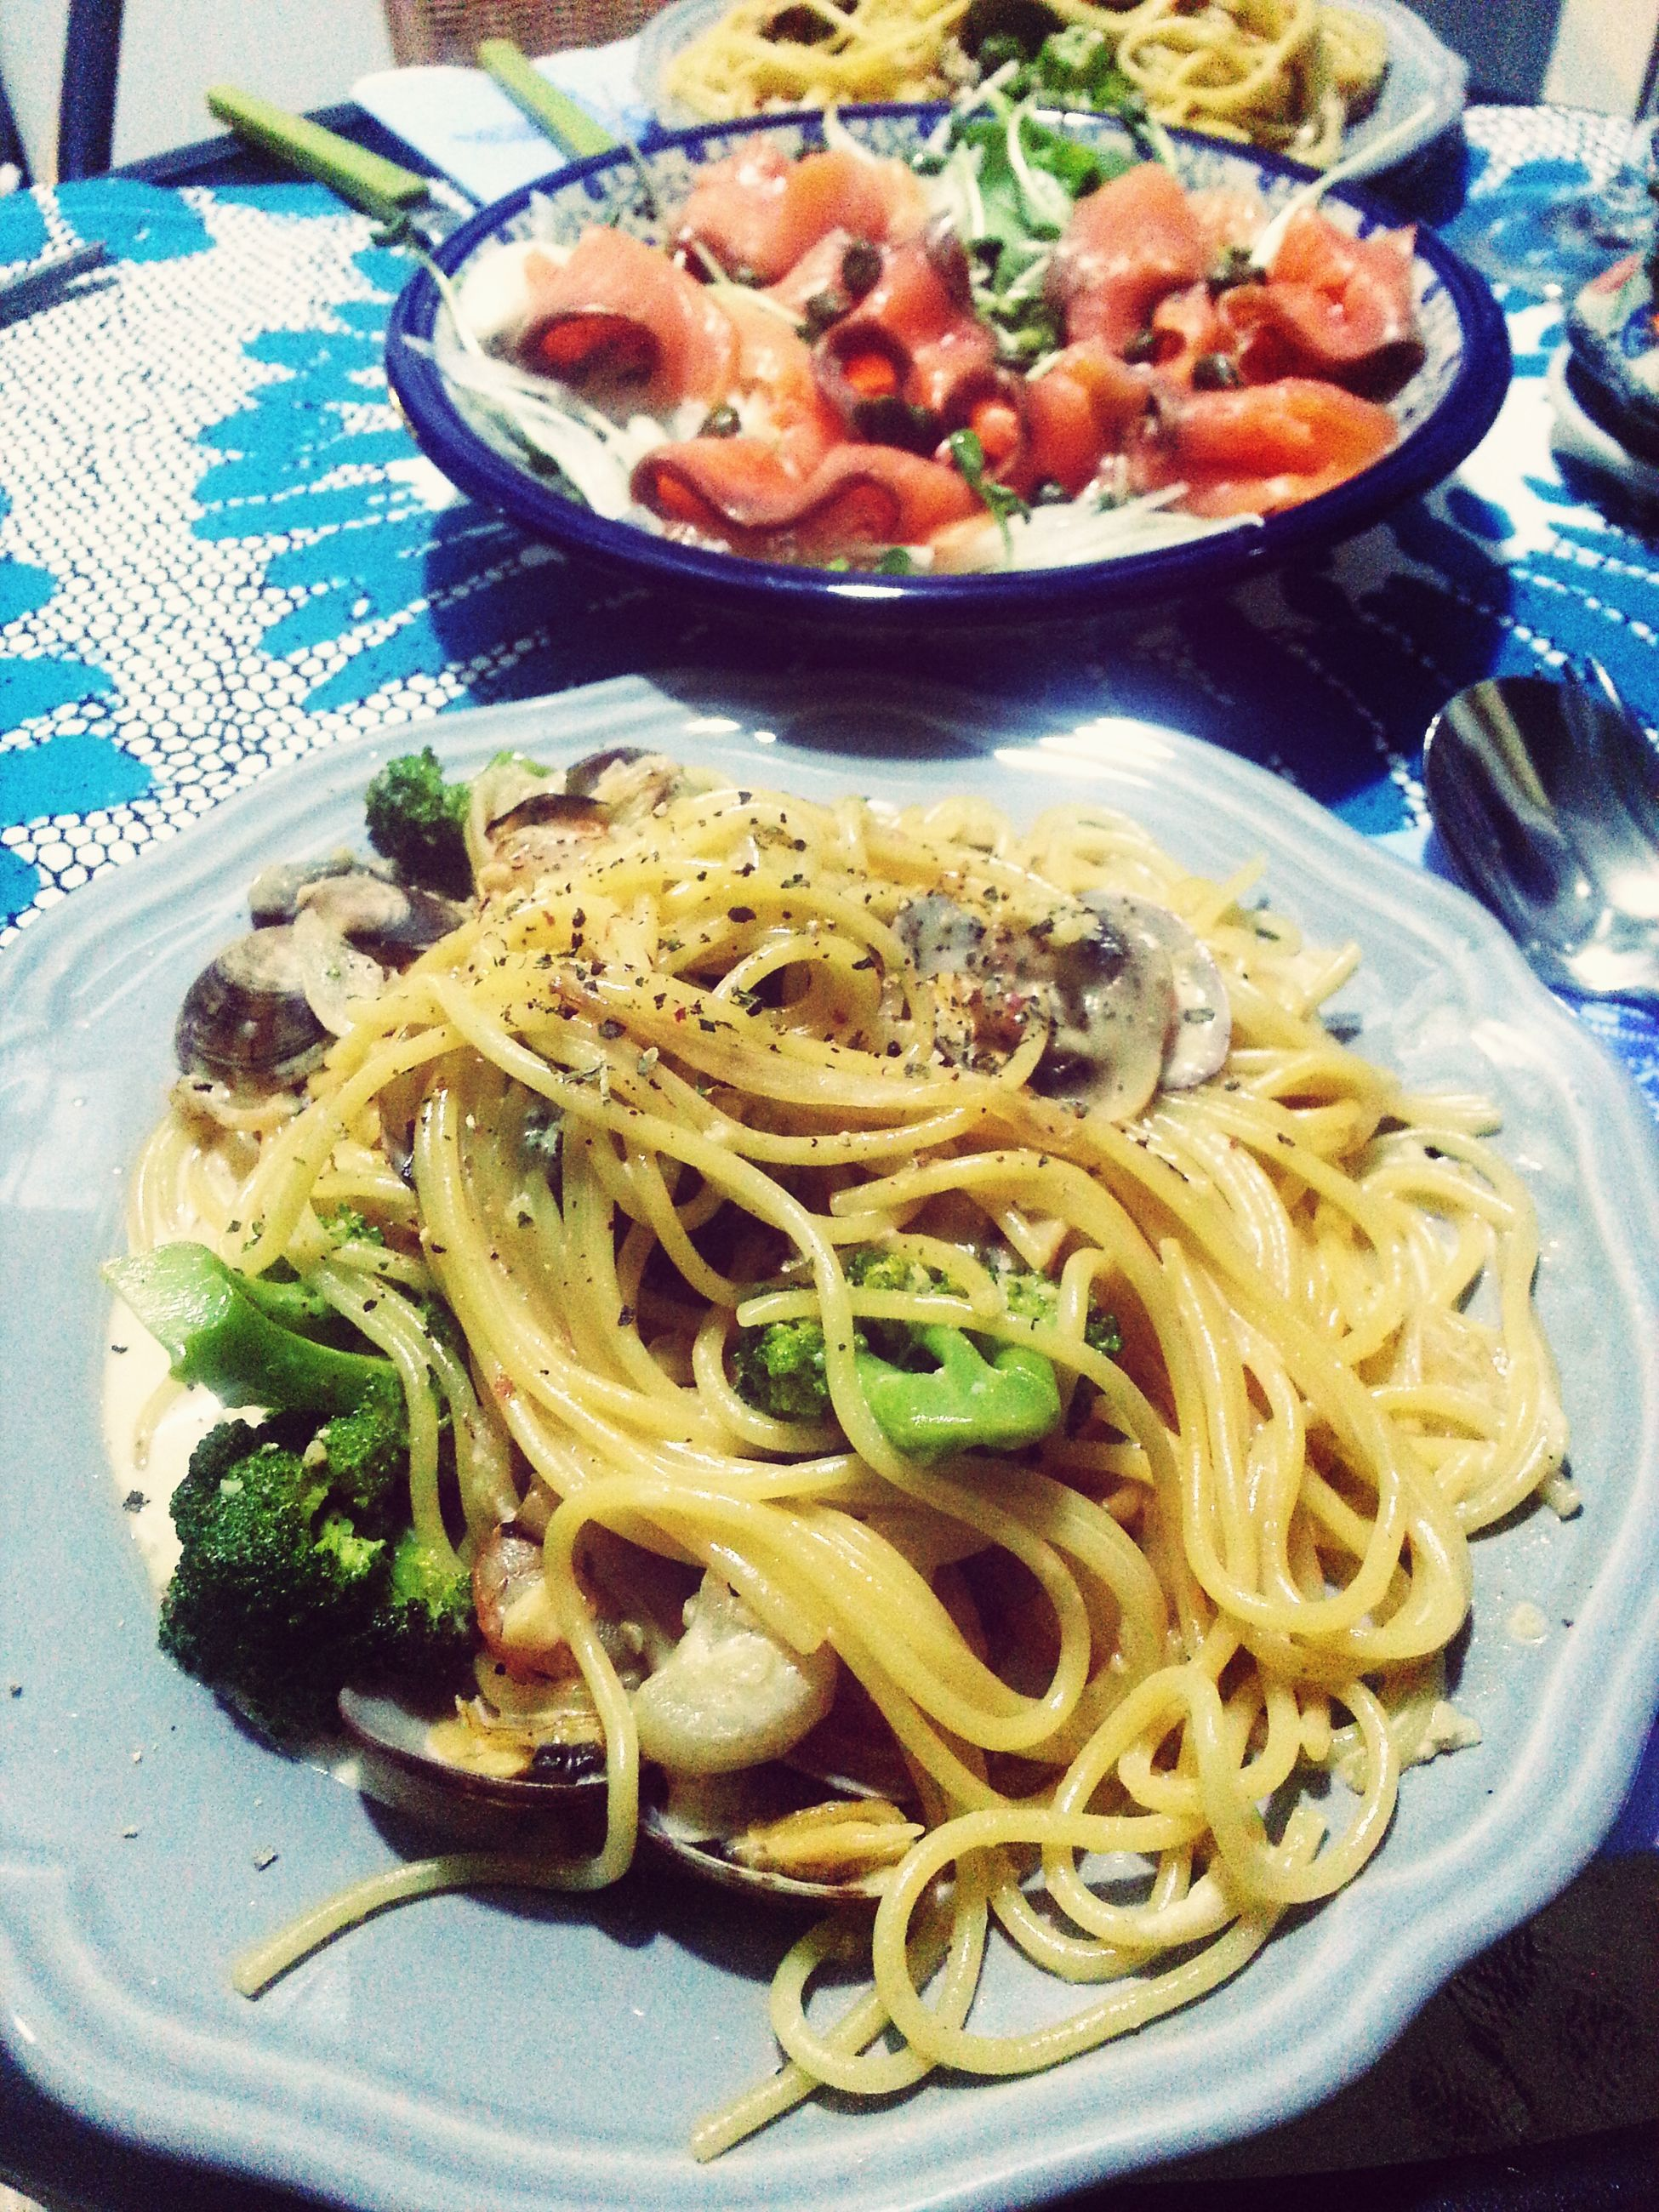 food and drink, food, freshness, ready-to-eat, indoors, plate, healthy eating, still life, serving size, meal, table, high angle view, close-up, bowl, vegetable, indulgence, noodles, served, pasta, meat